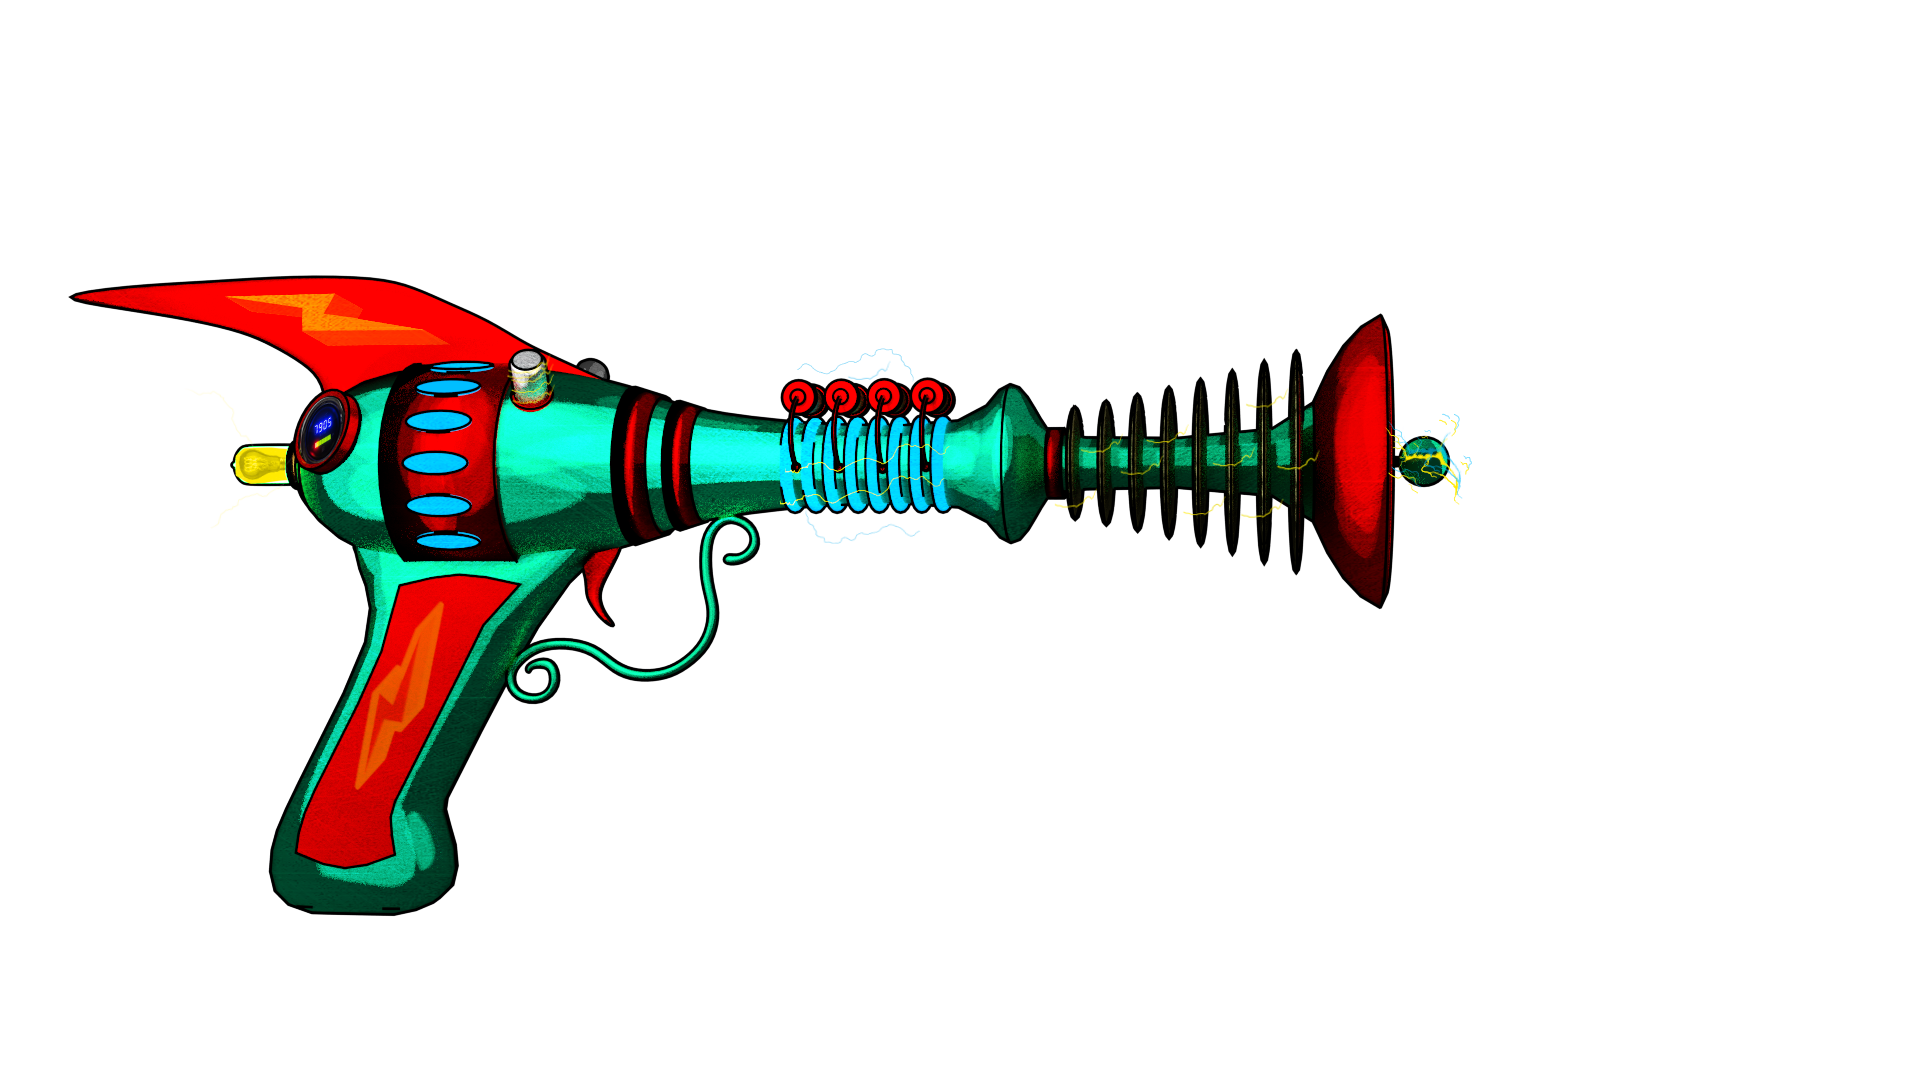 Weapons for The Bundead Android Game